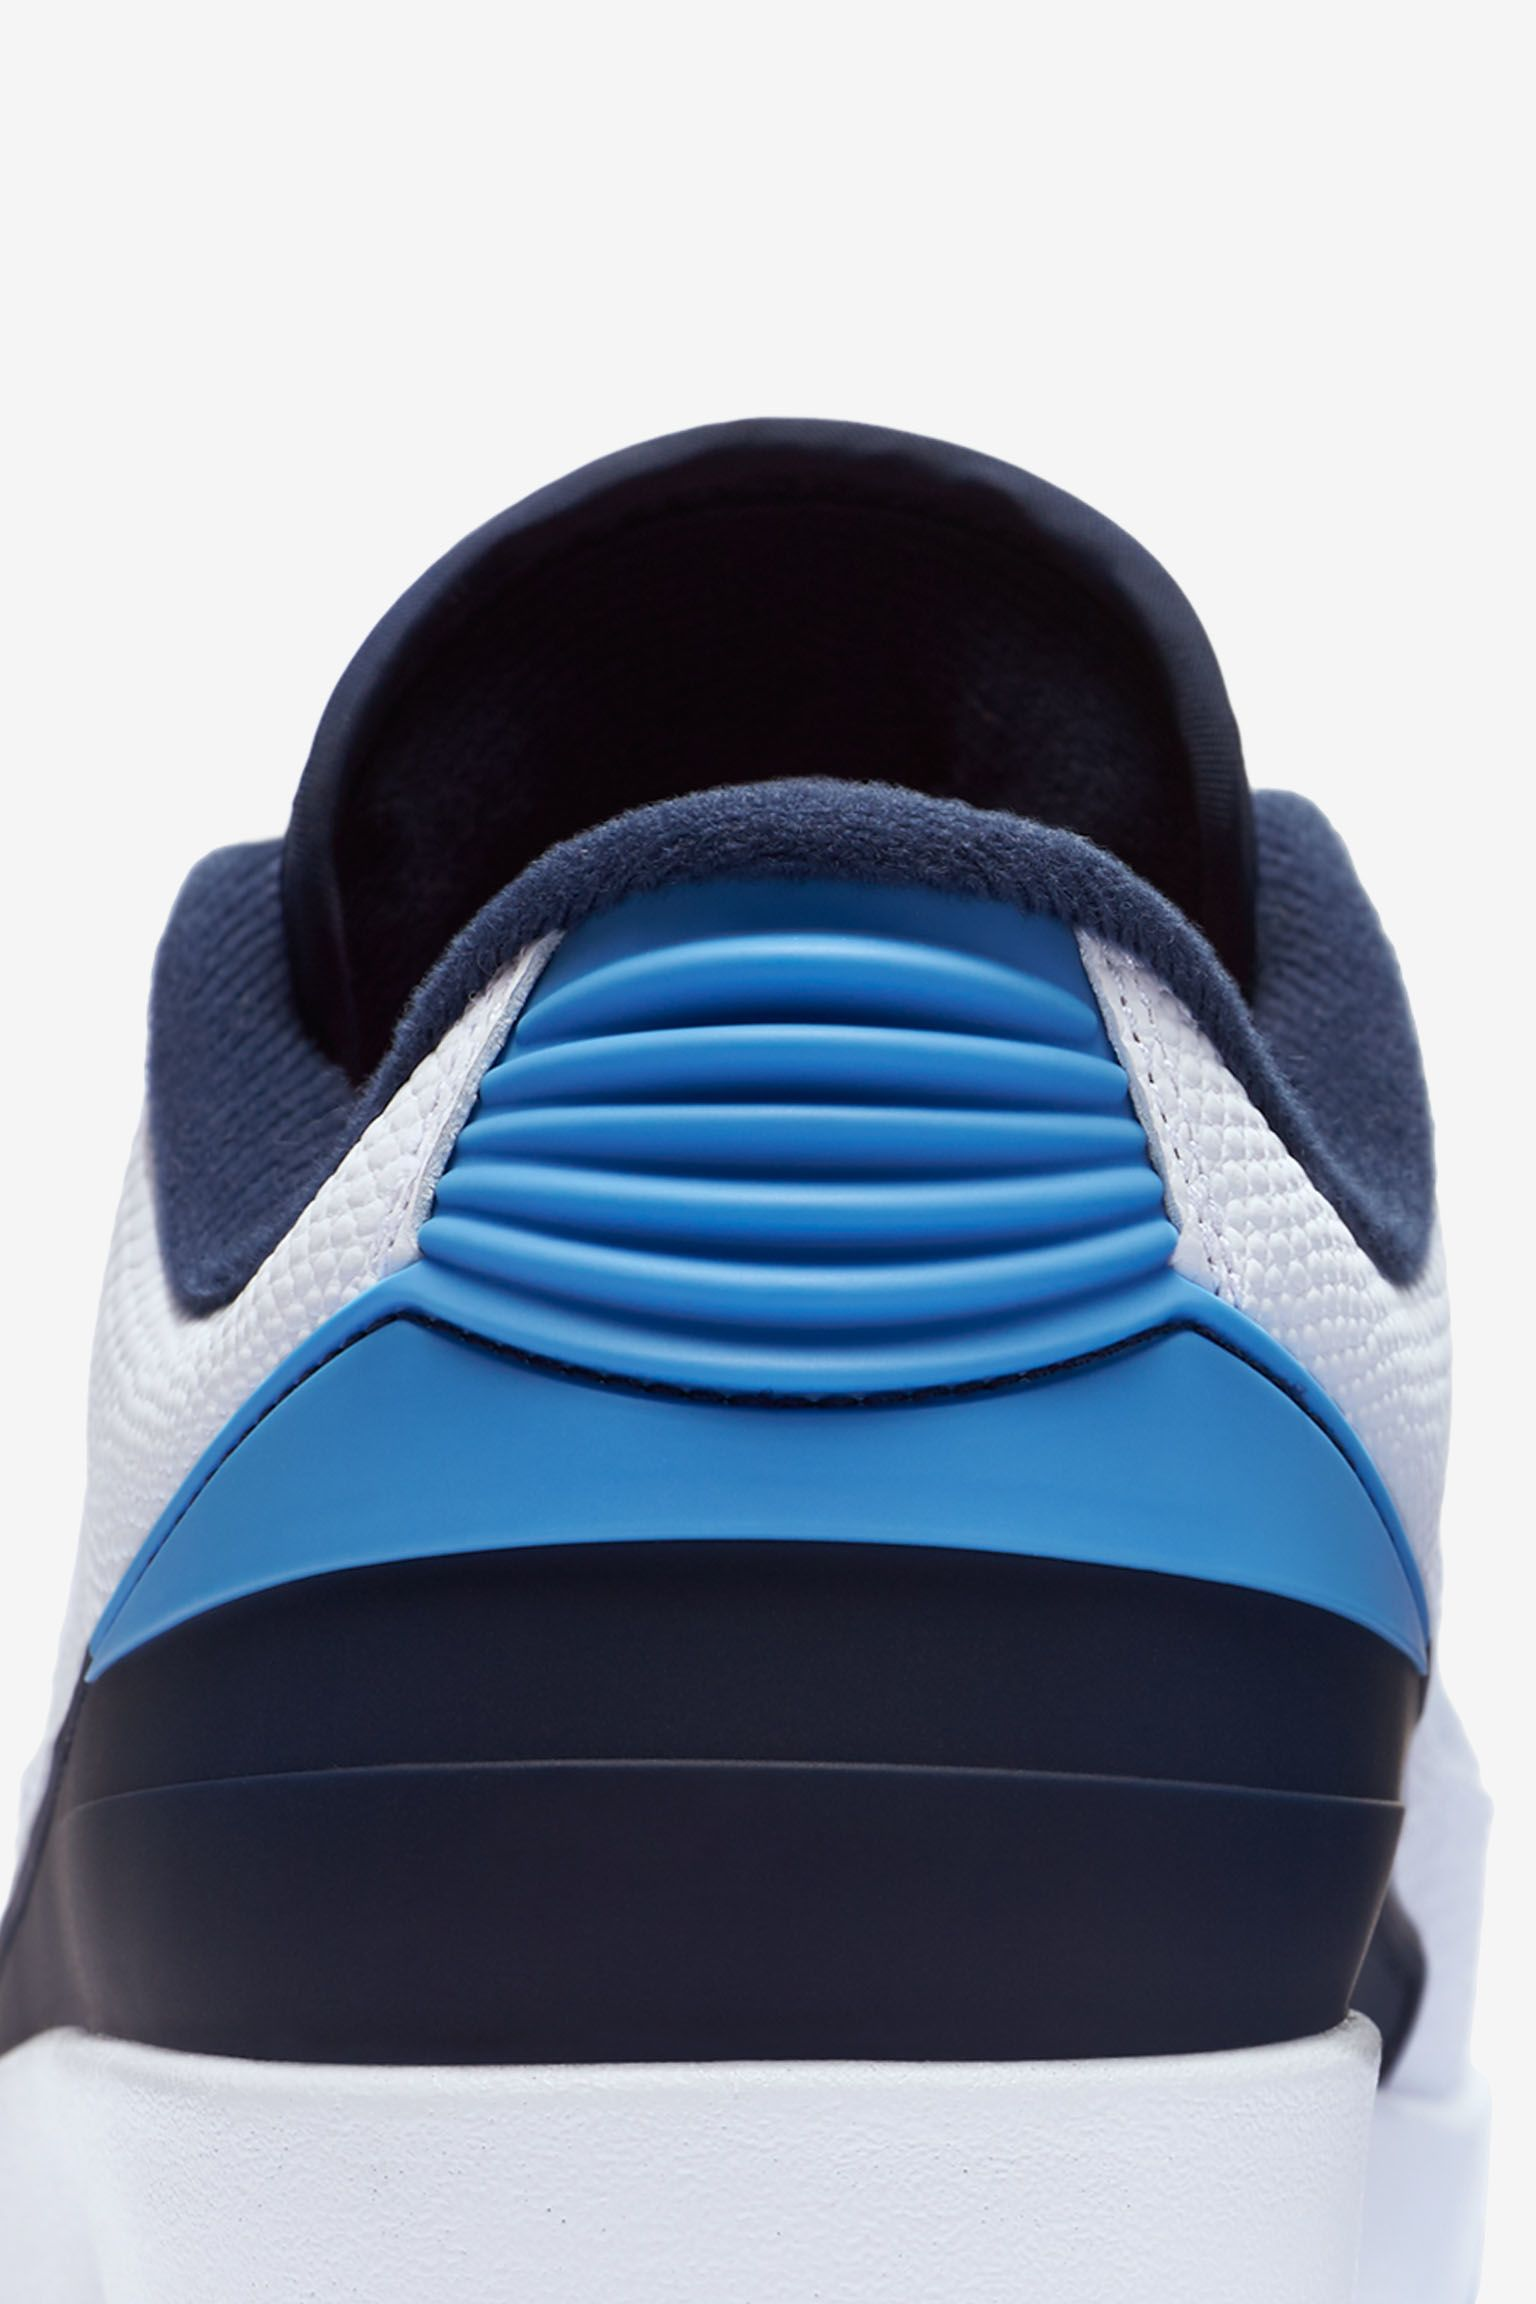 Air Jordan 2 Retro Low 'Midnight Navy' Release Date